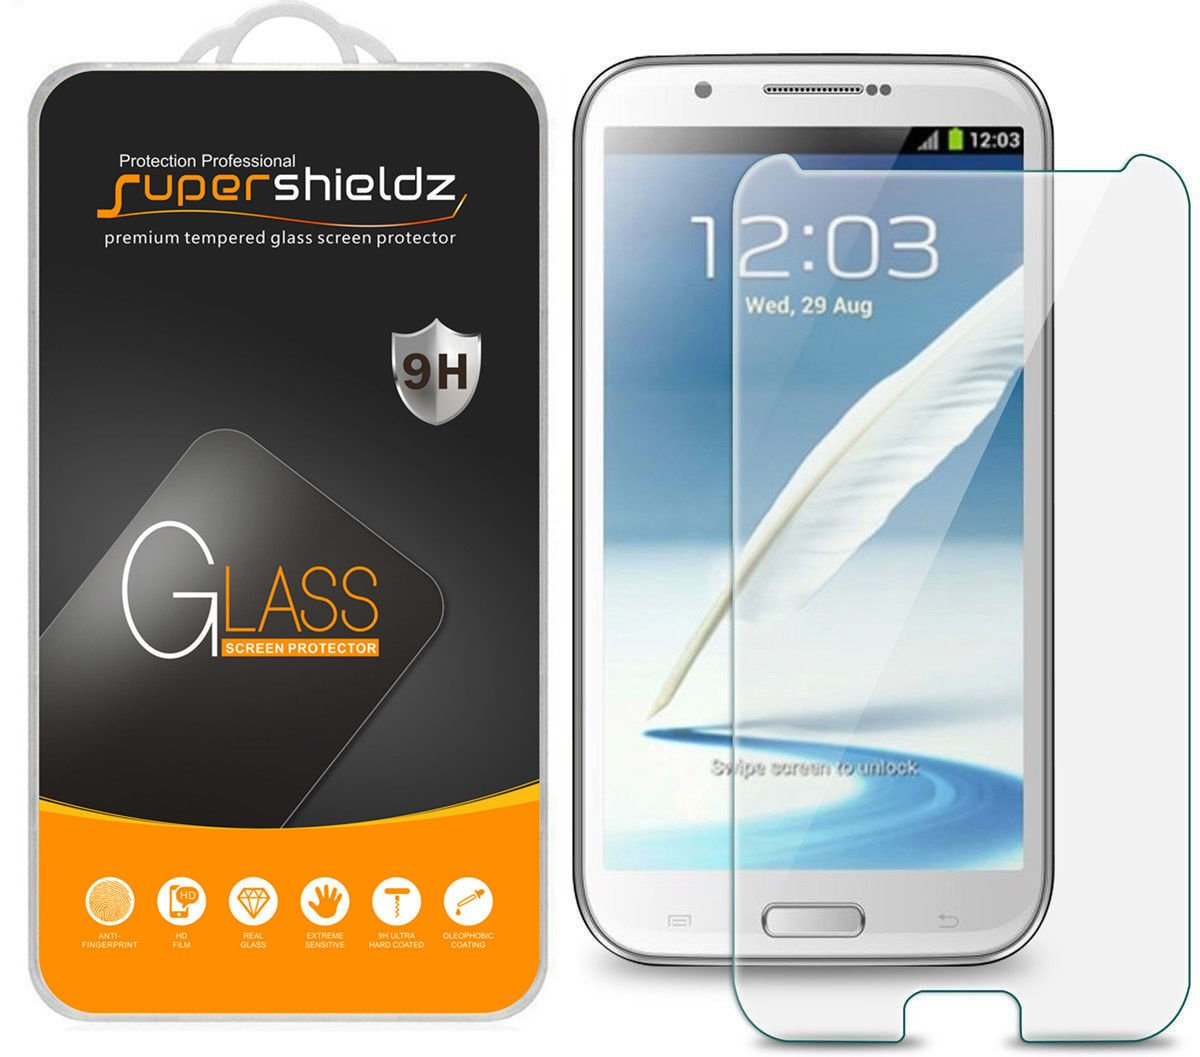 [2-Pack] Supershieldz for Samsung Galaxy Note 2 / N7100 Tempered Glass Screen Protector, Anti-Scratch, Anti-Fingerprint, Bubble Free, Lifetime Replacement Warranty